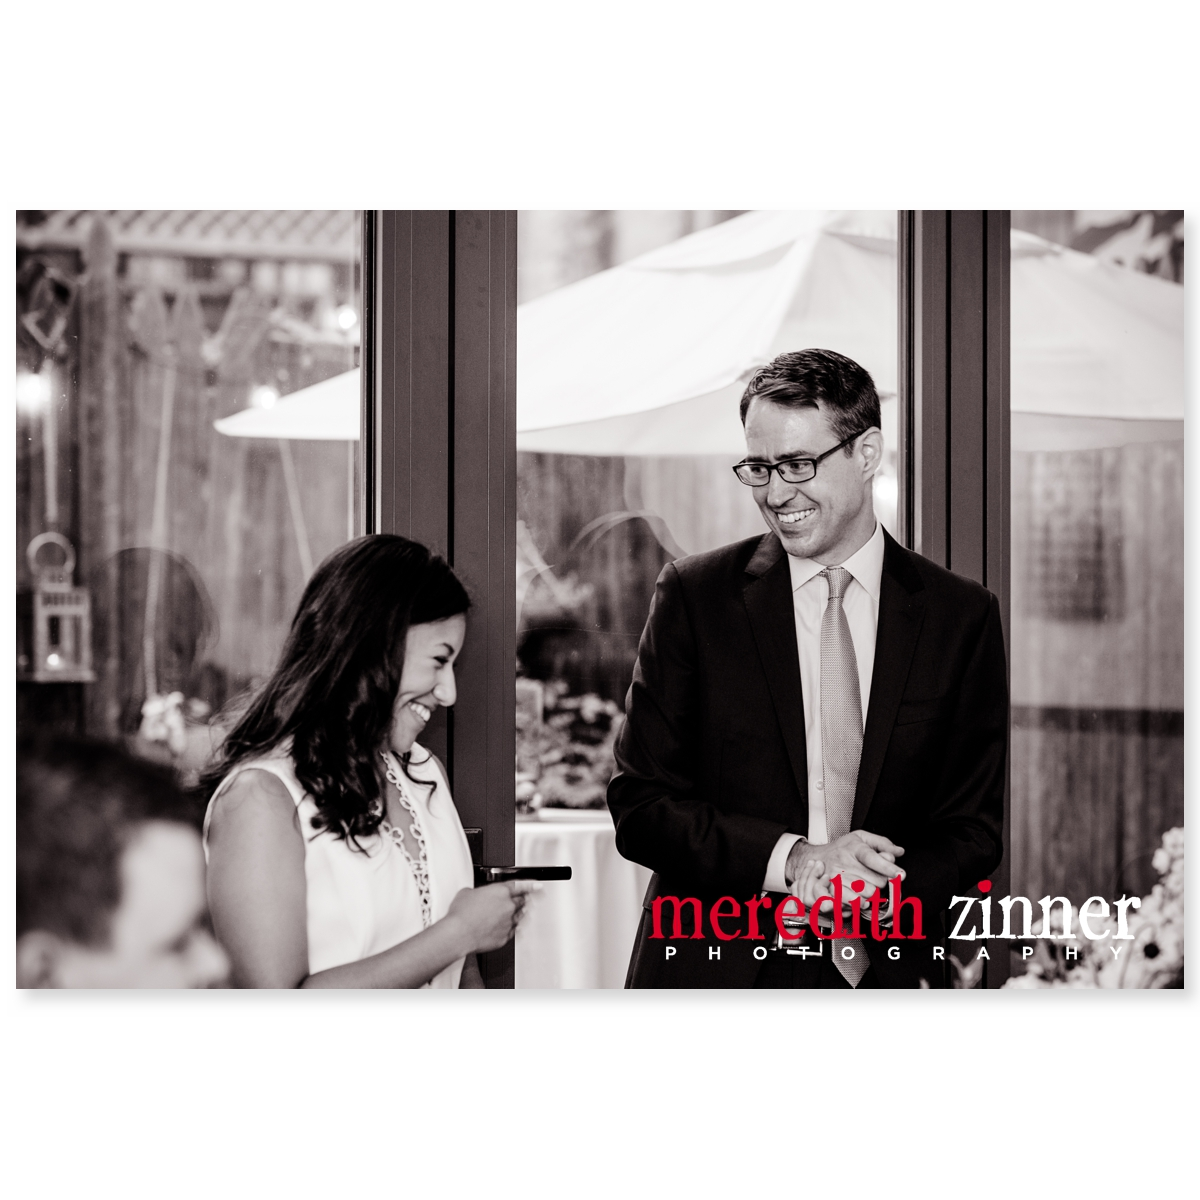 Meredith_Zinner_Photography_StilesCelebration_0171